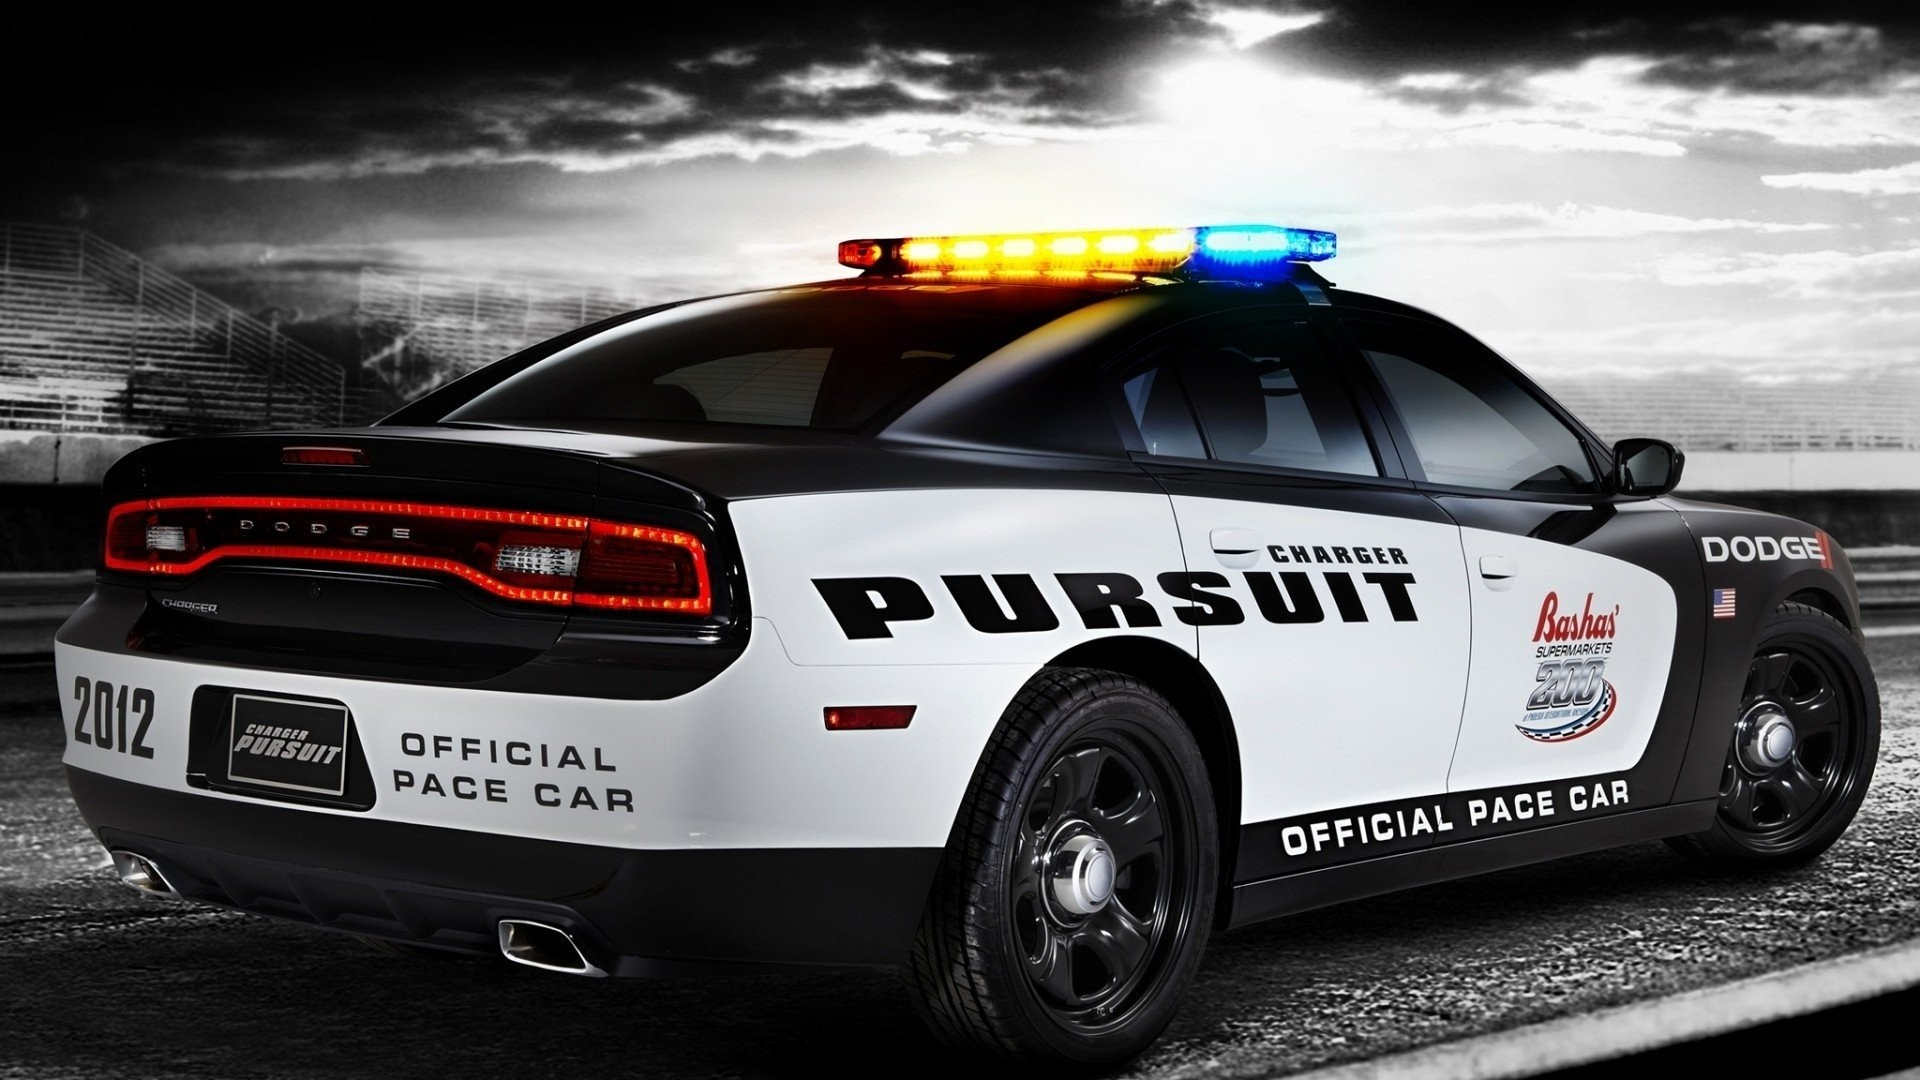 police car wallpaper backgrounds (66+ images)